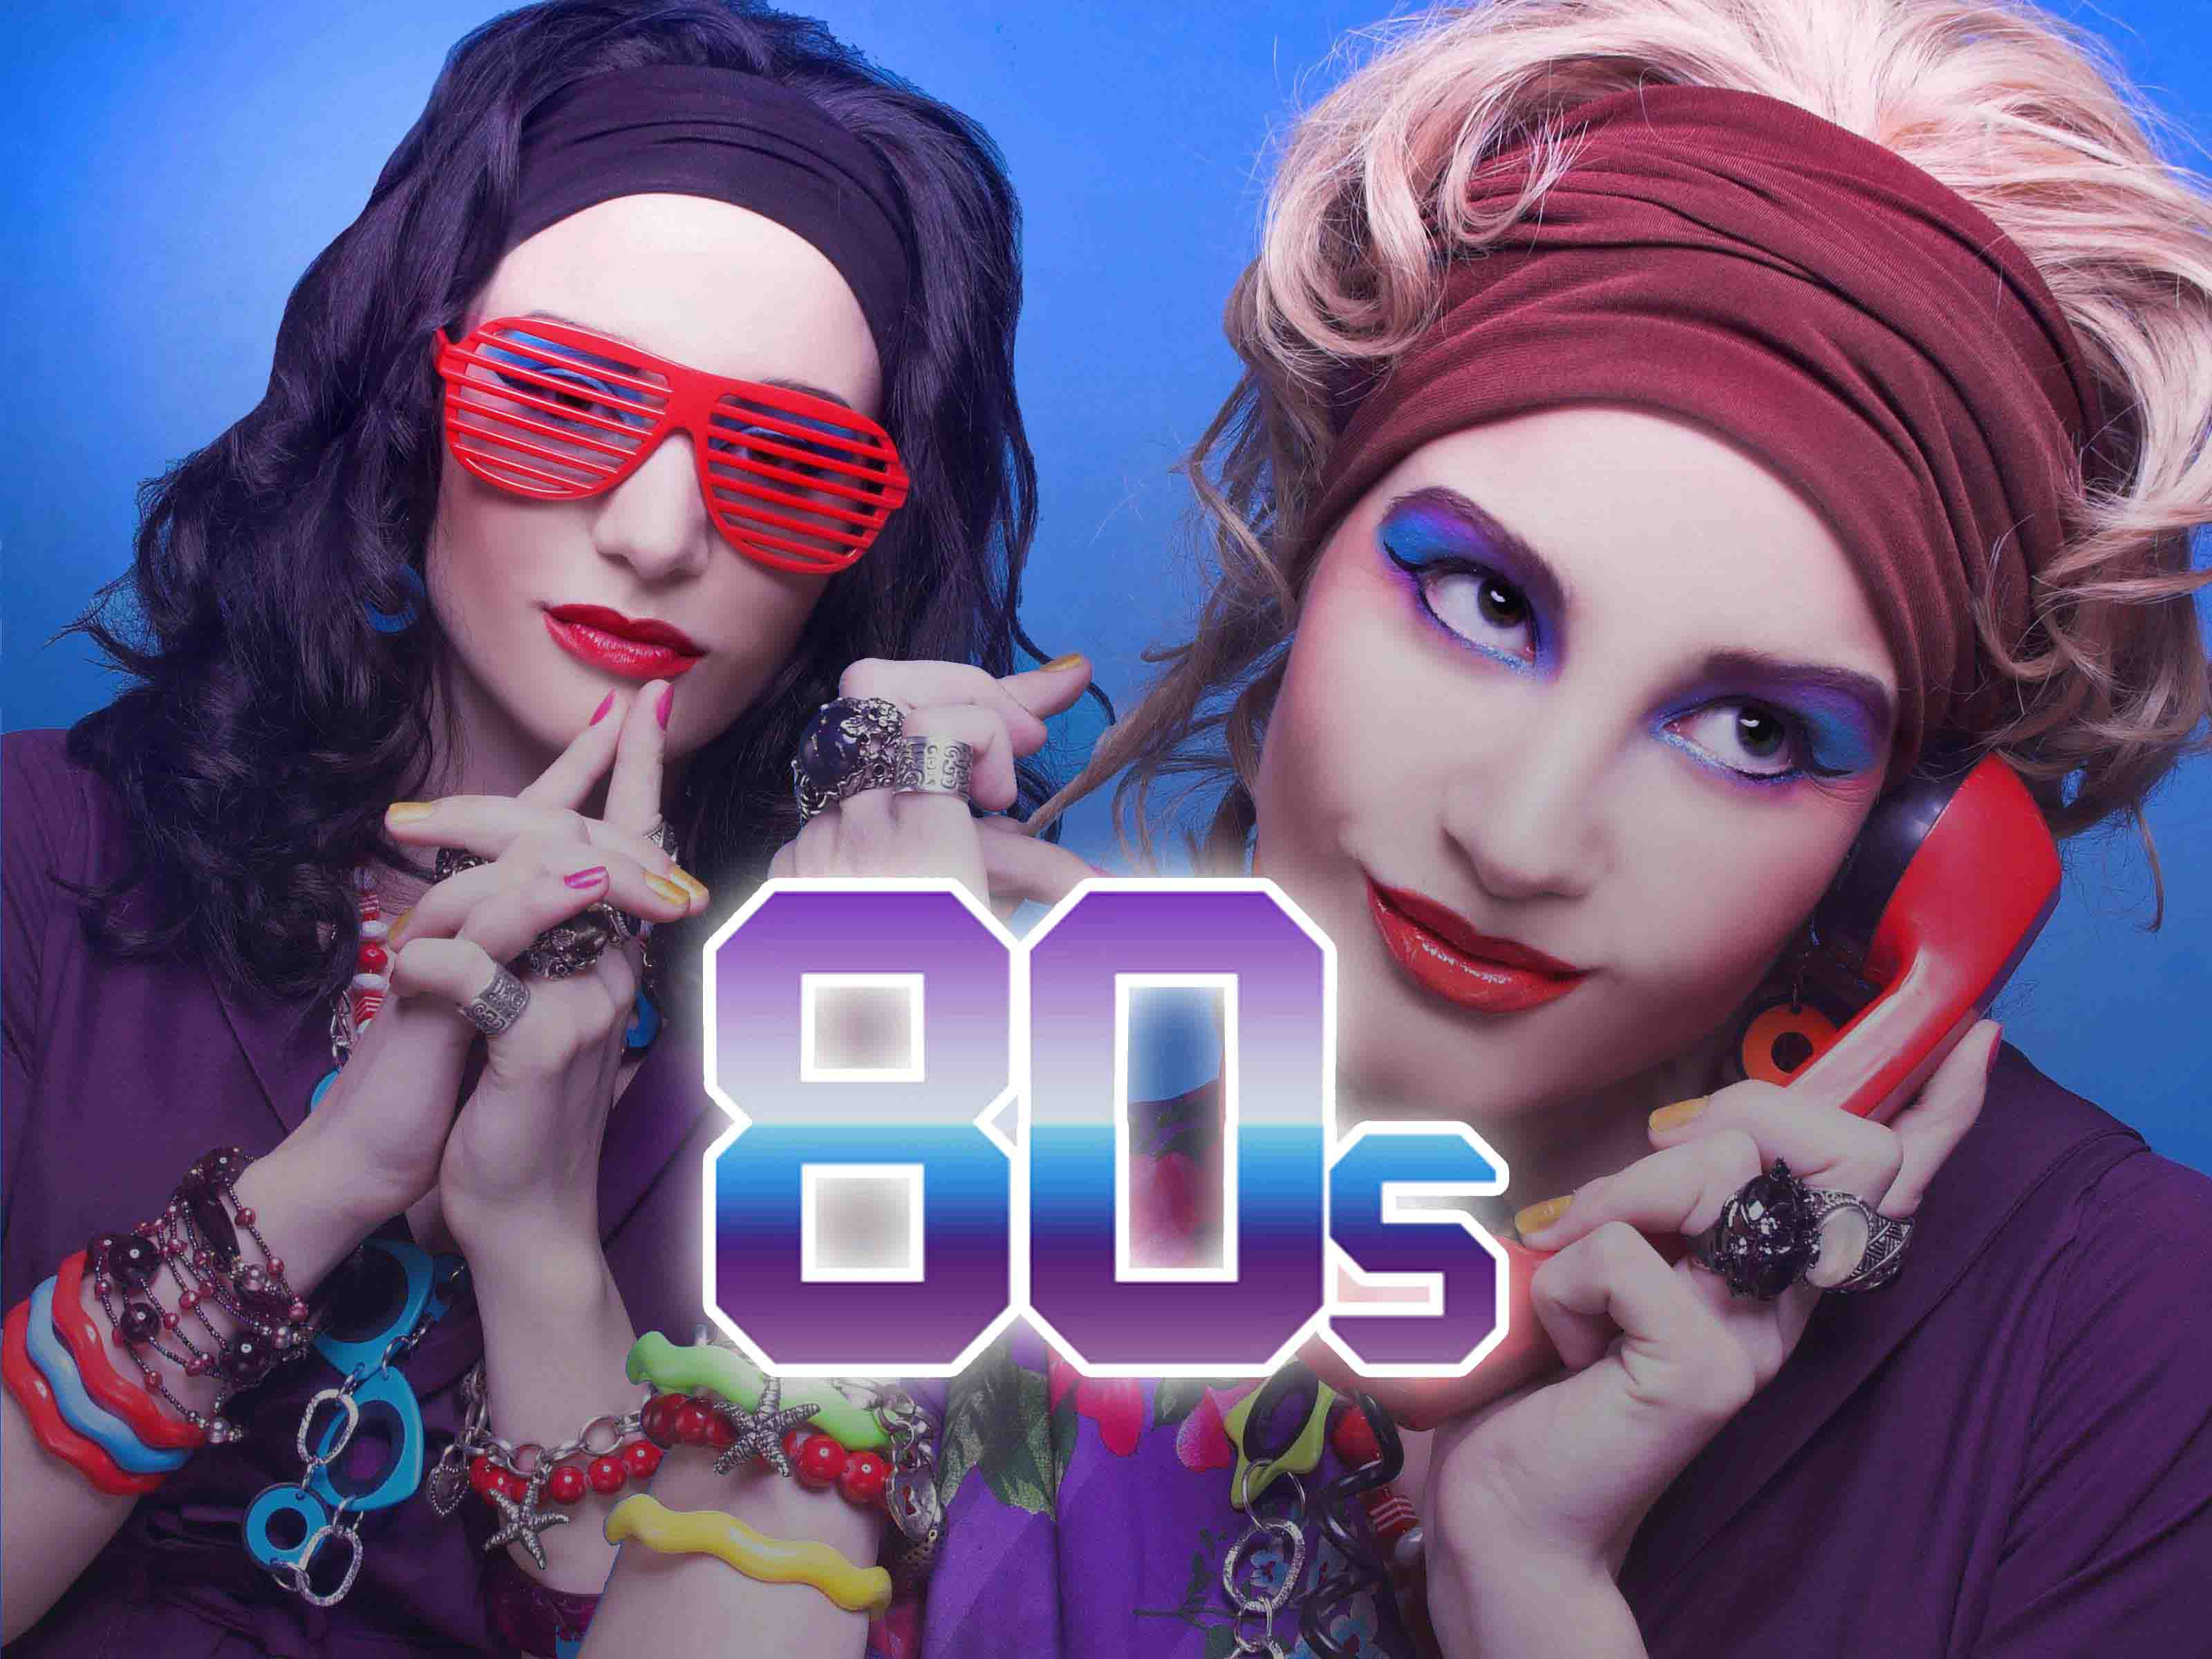 Hen Party Themes - 80s